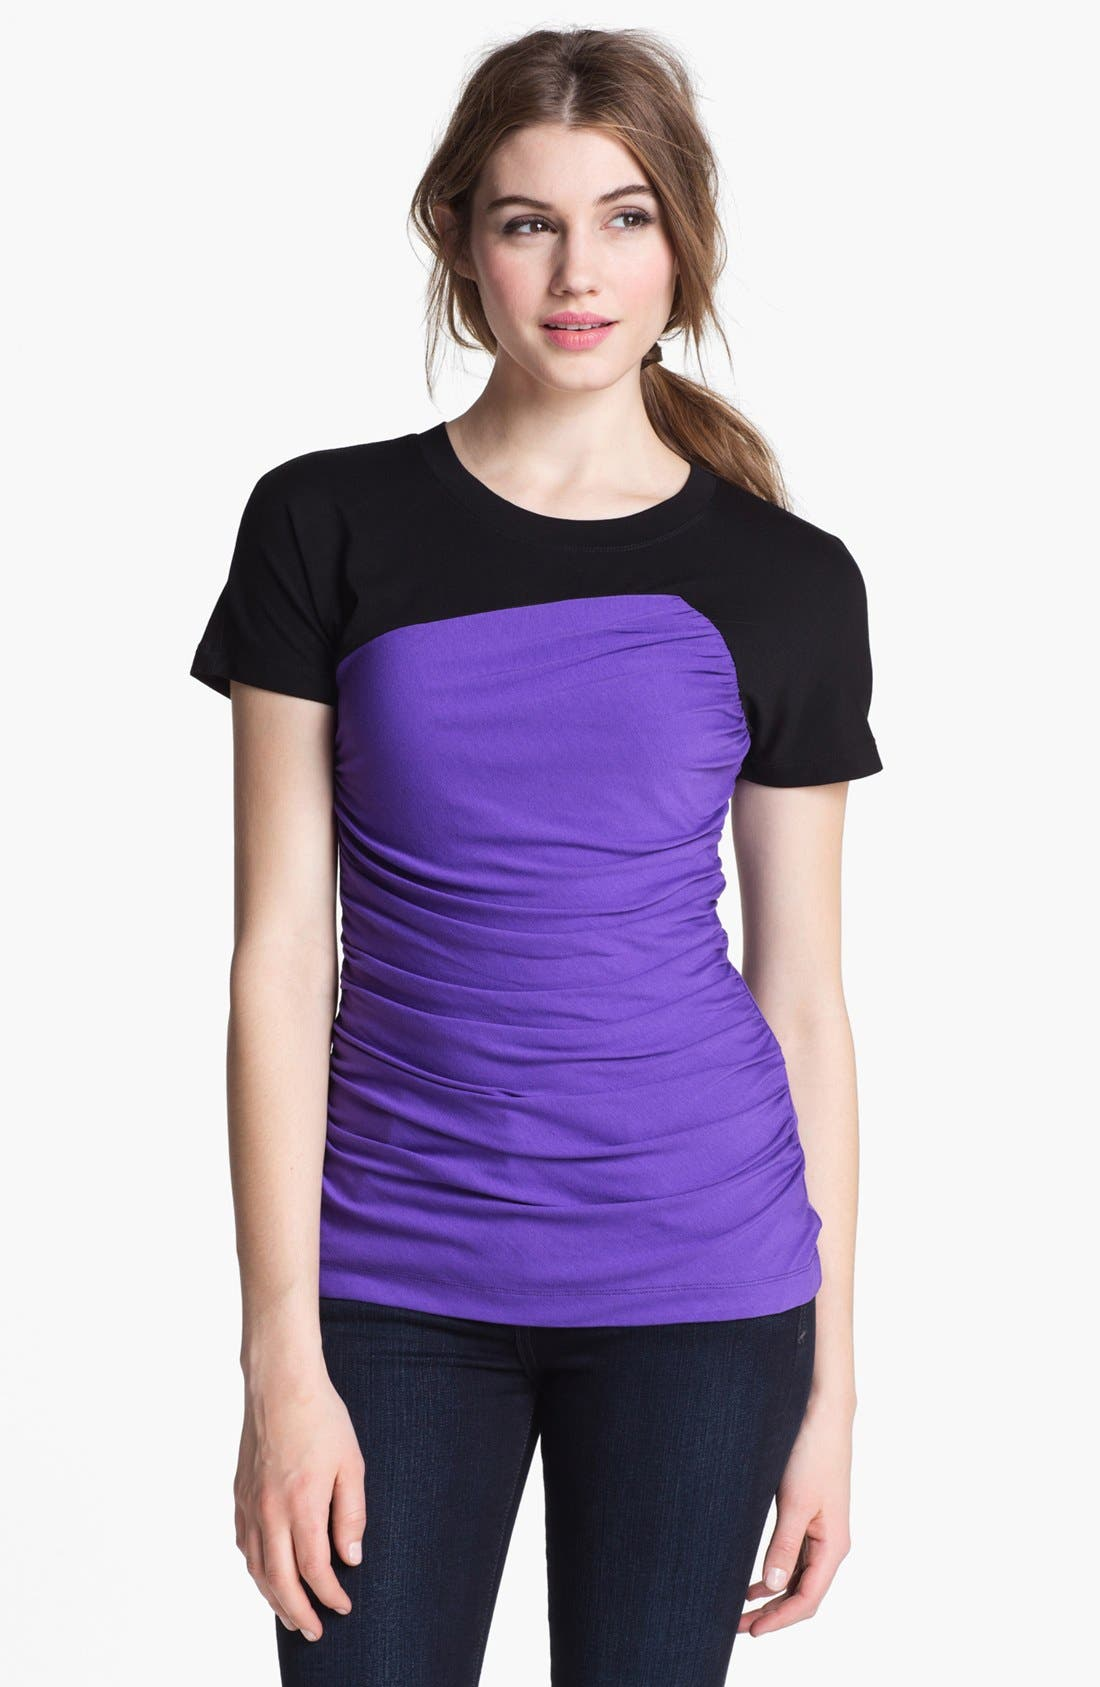 Main Image - Vince Camuto Colorblock Ruched Tee (Regular & Petite)